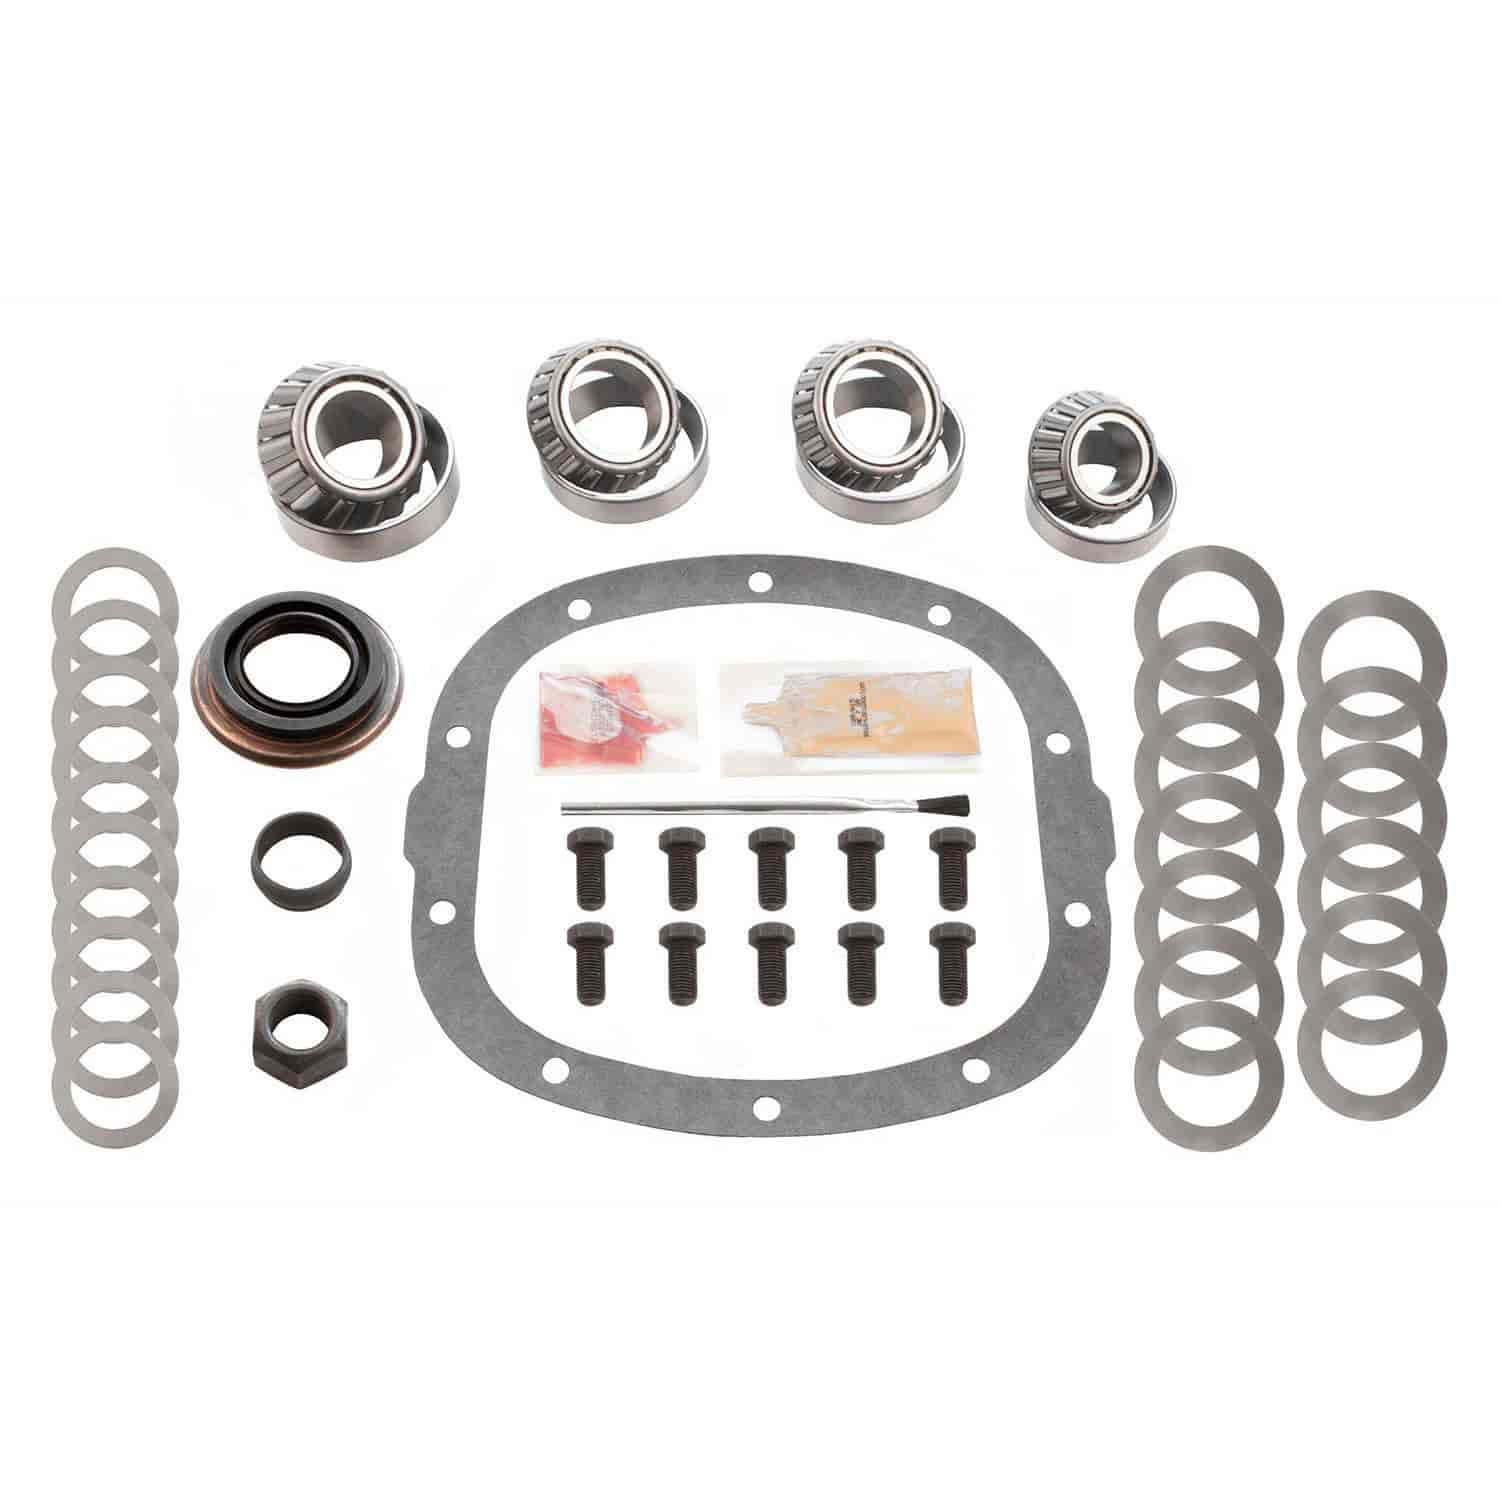 Motive Gear R7.5GRLMK - Motive Gear Differential Bearing Kits